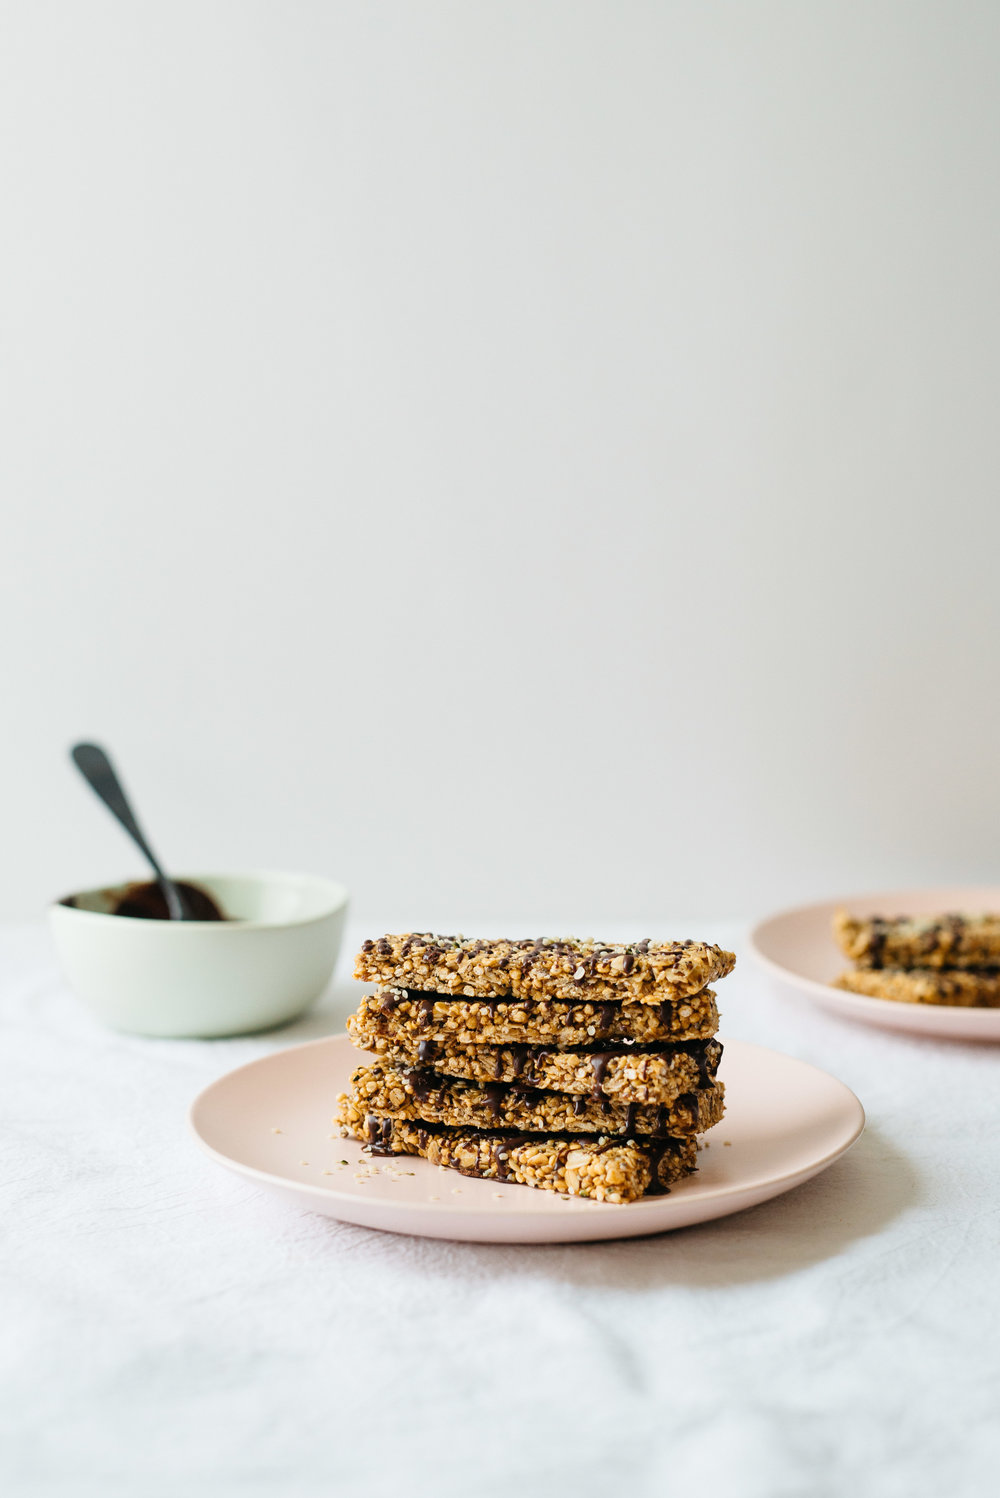 Chocolate-Drizzled Tahini Granola Bars | Dolly and Oatmeal